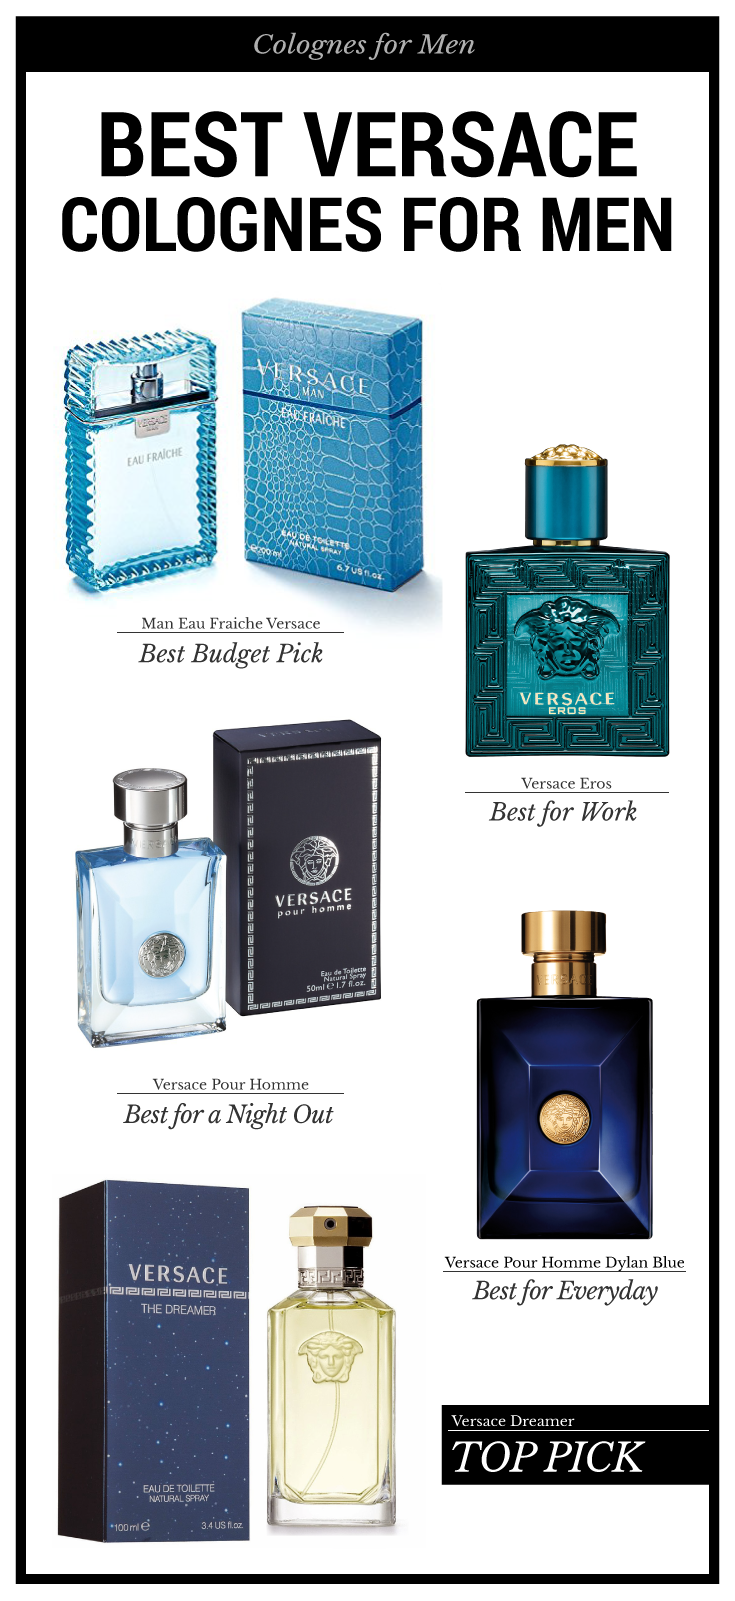 a7660d3ac1d36 Our top 5 picks of Versace cologne for men. Perfect for casual